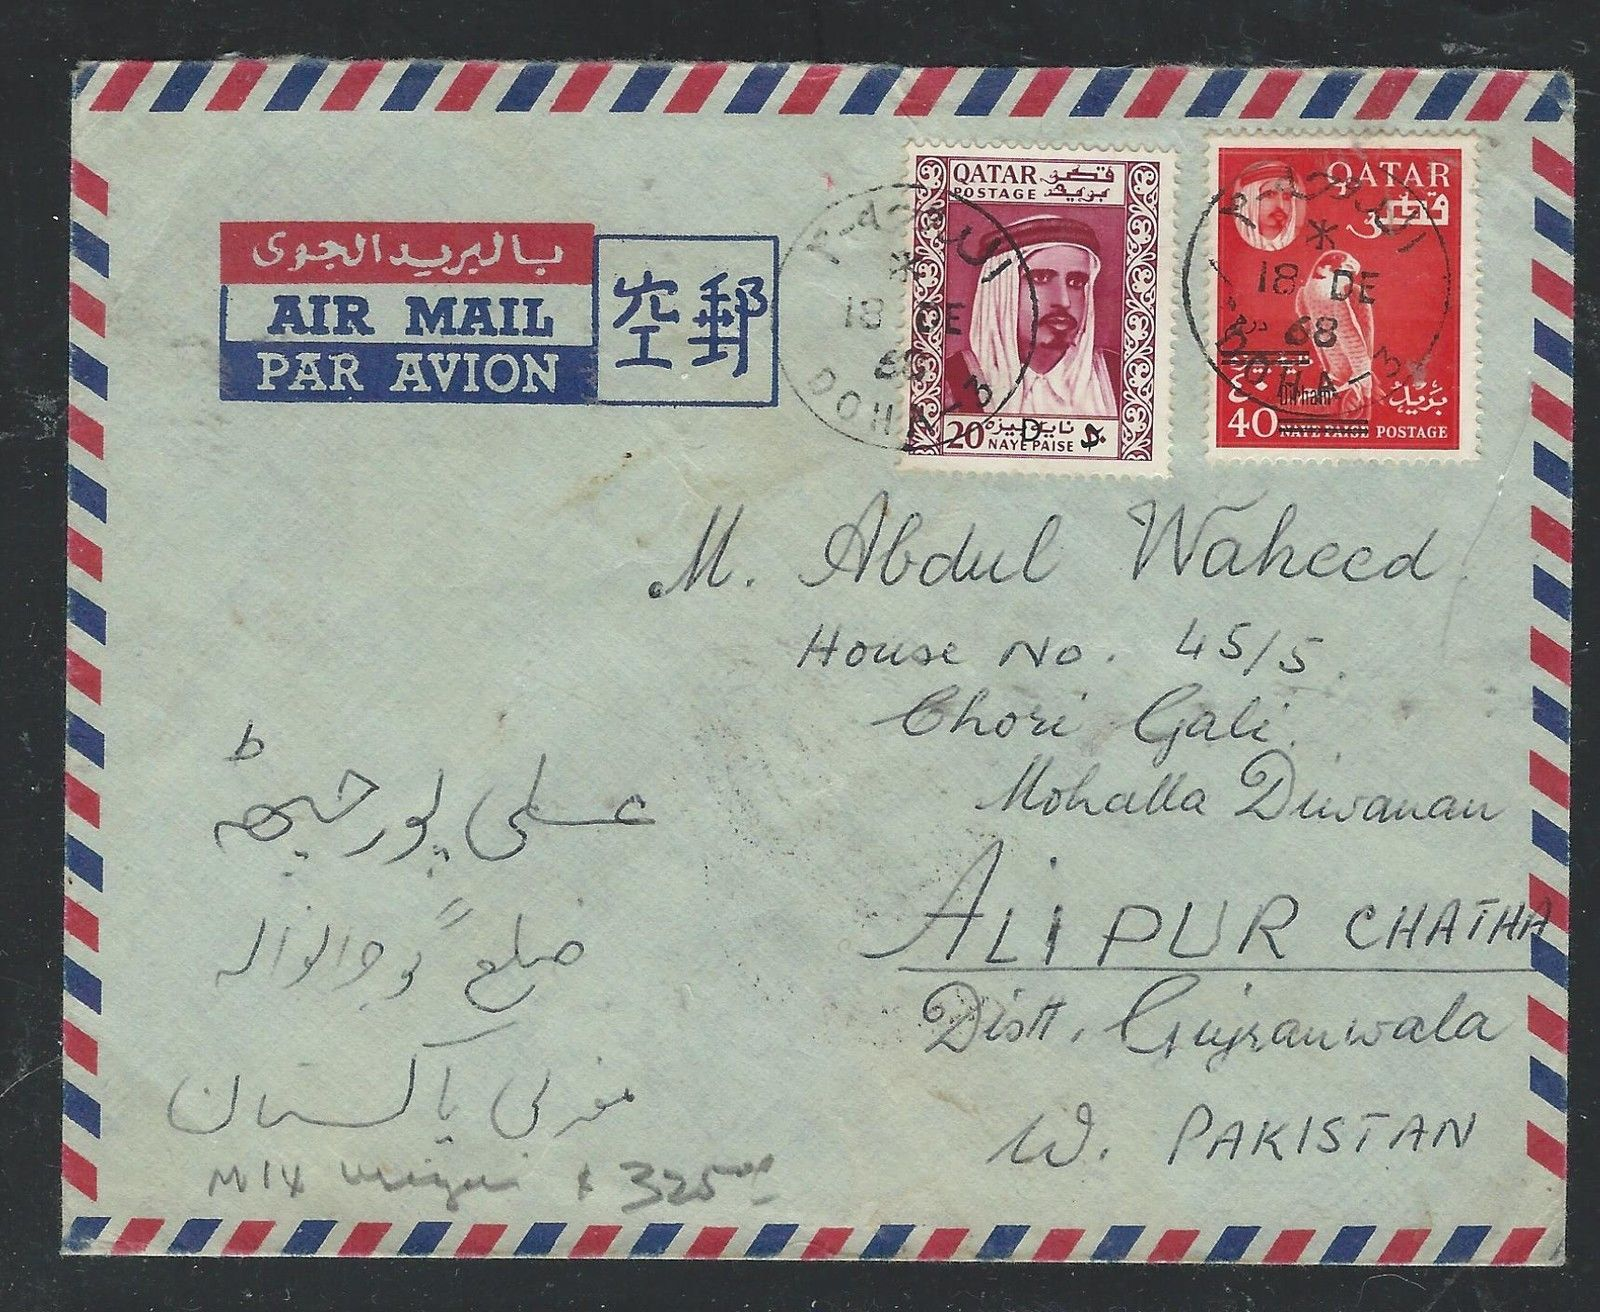 QATAR (P0204B) REVALUED CURRENCY+NEW 20NP 1965 SMALL COVER FROM DOHA